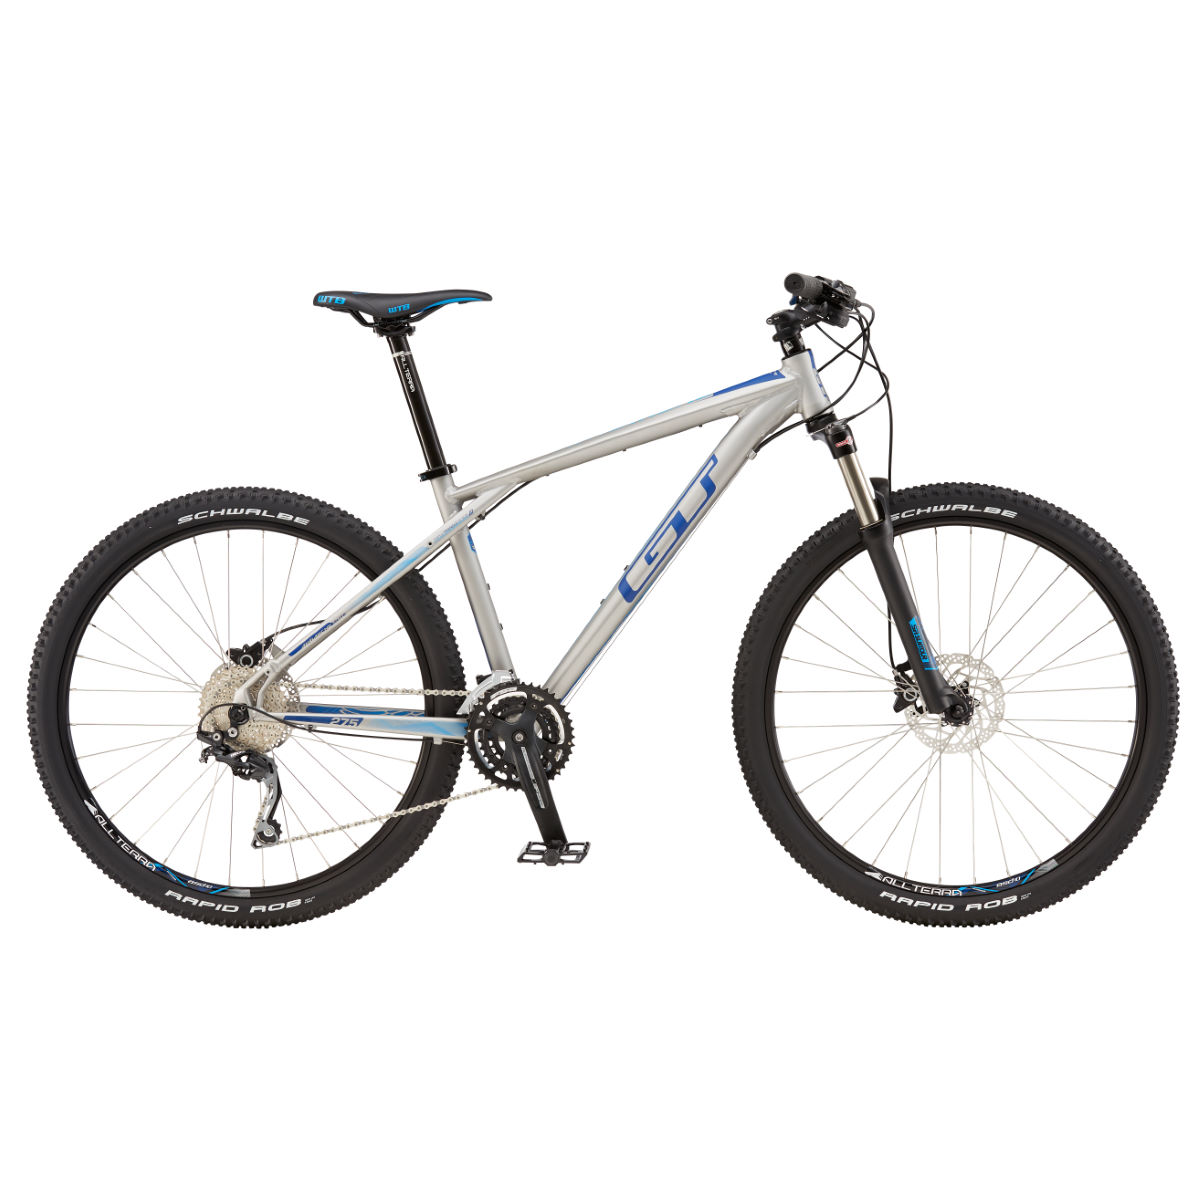 VTT GT Avalanche Elite (2016) - M Raw VTT semi-rigides